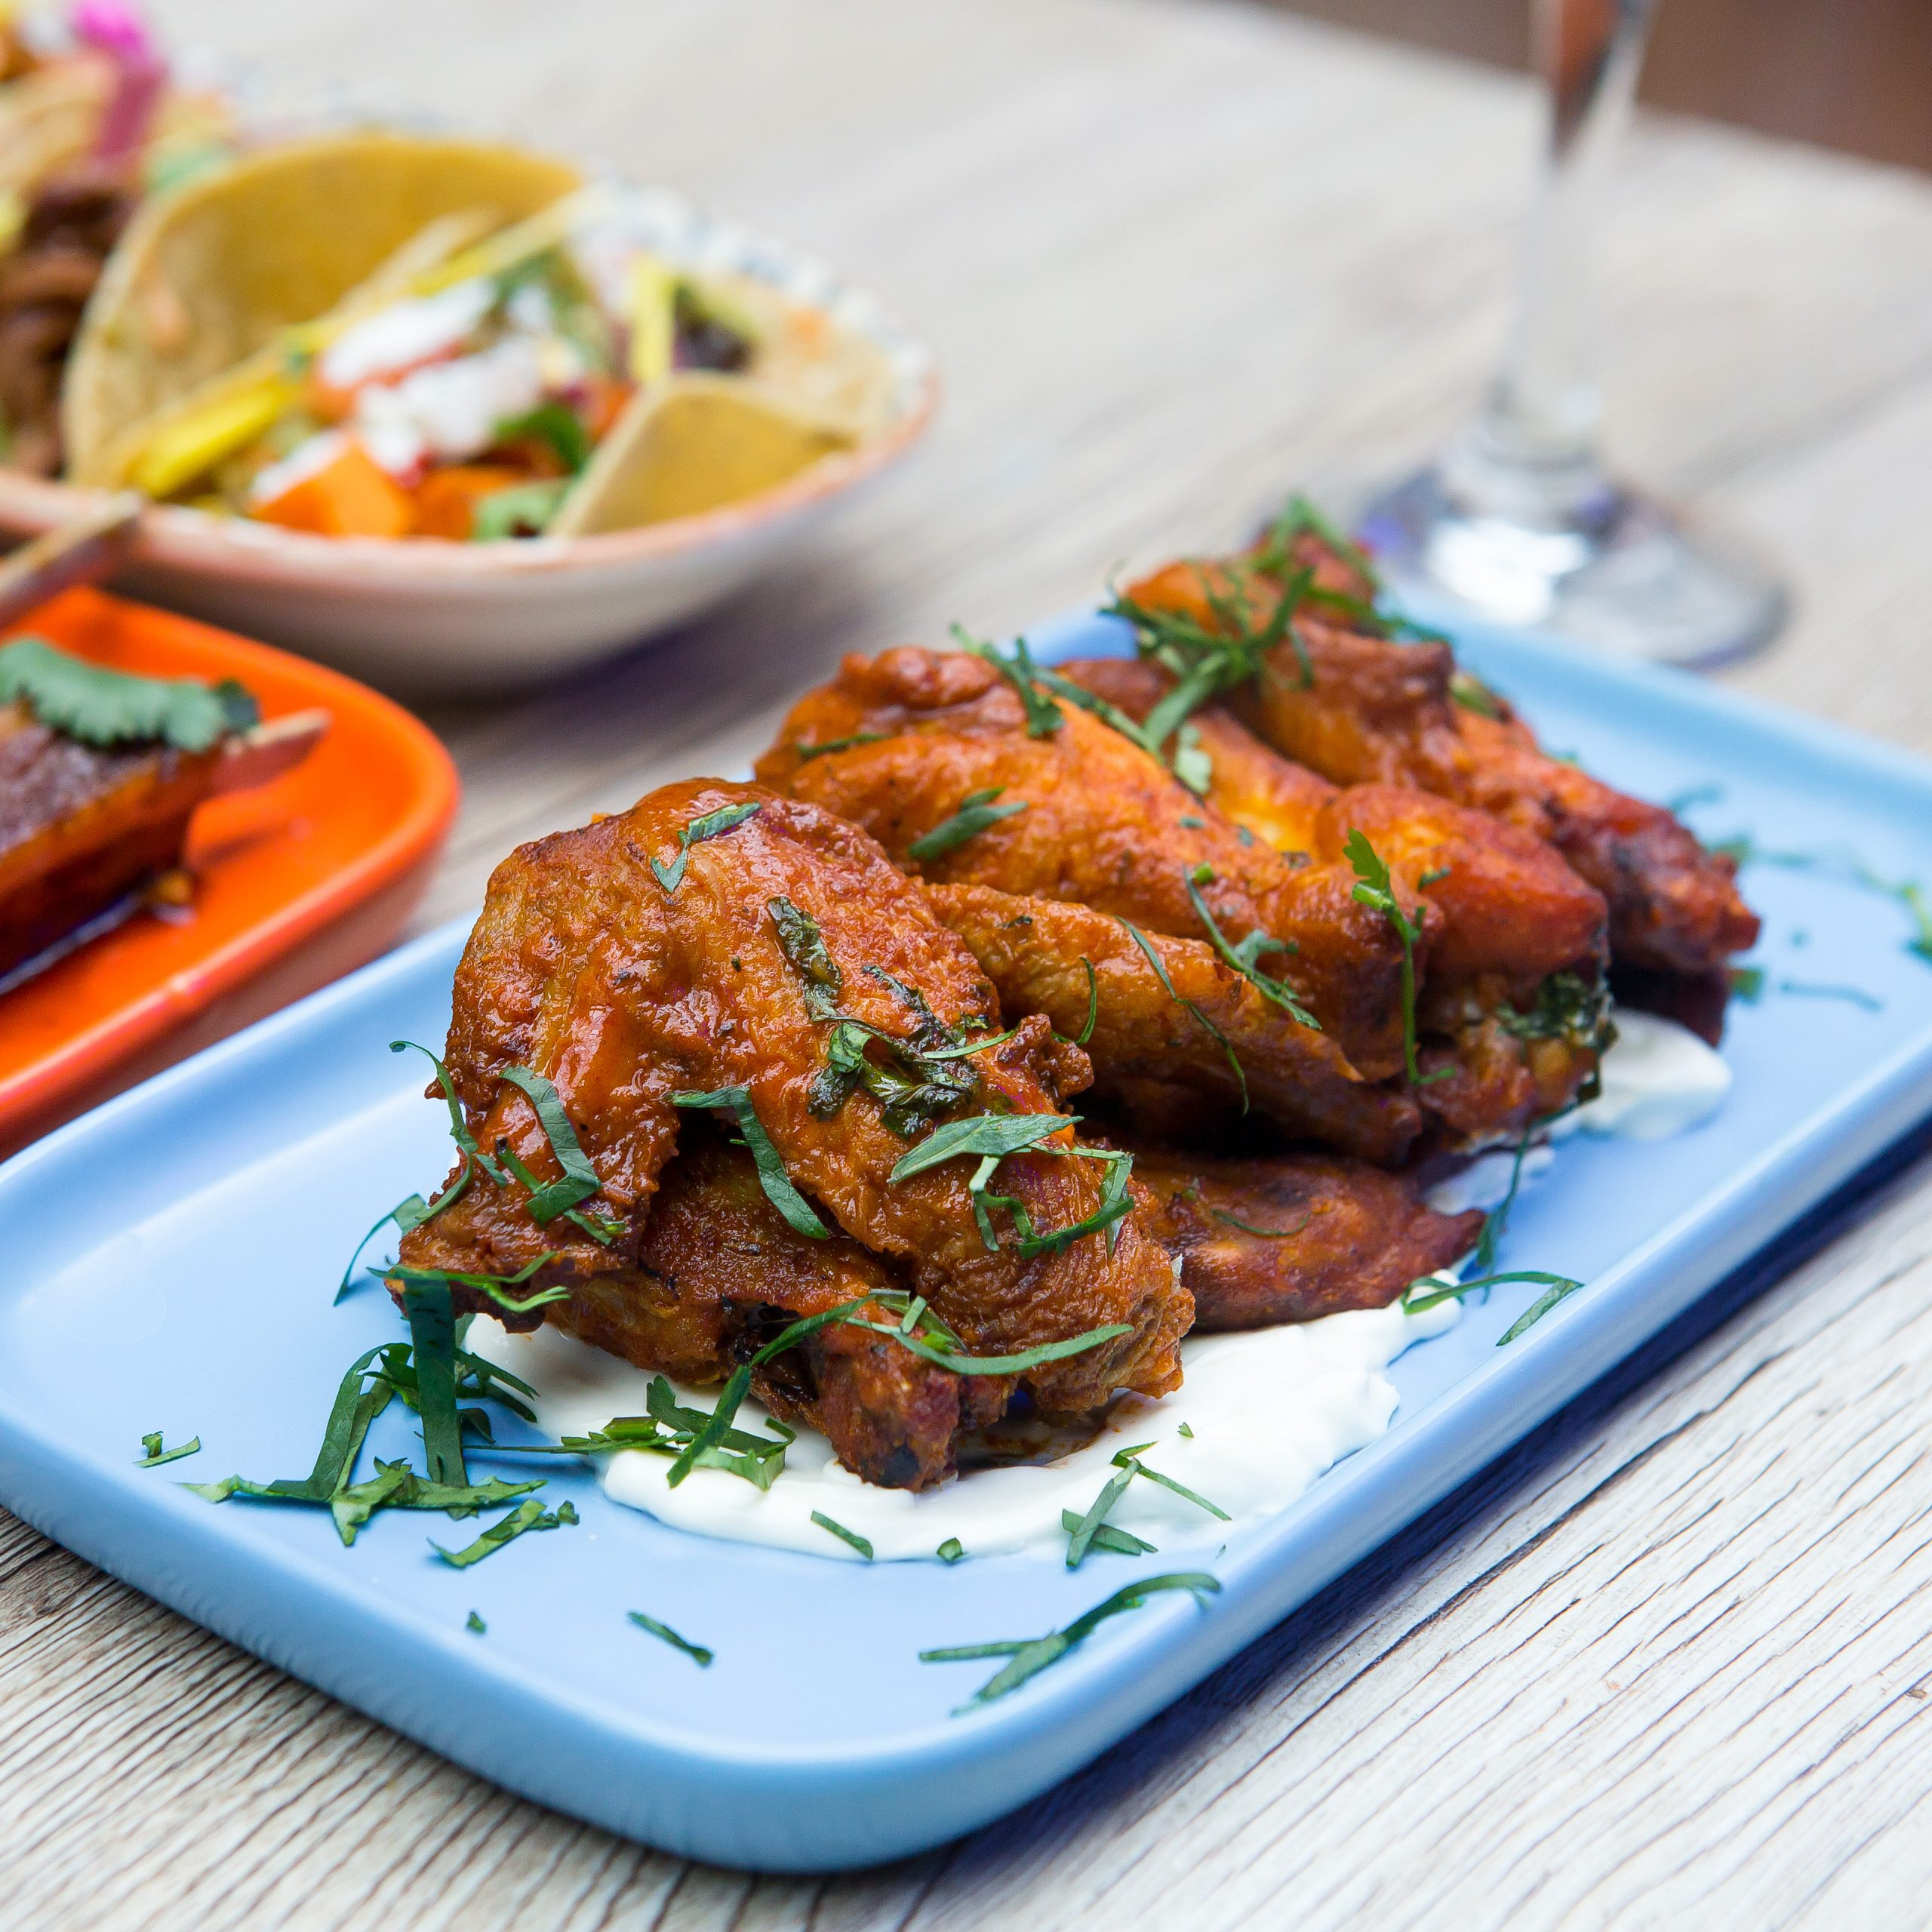 Mexican Food: Buffalo chicken wings served on a plate